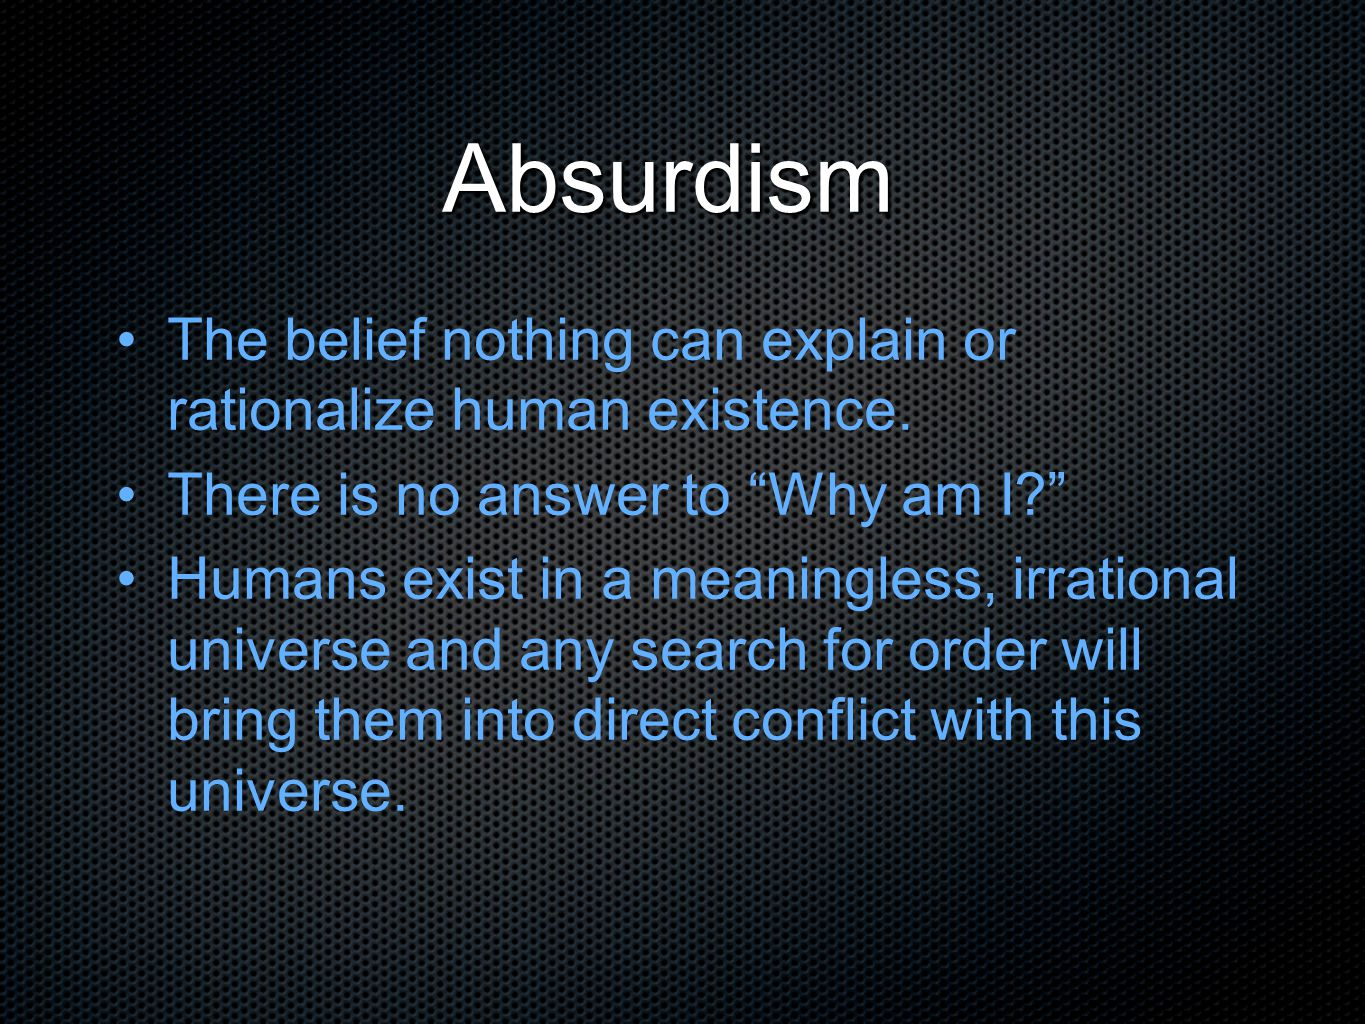 Absurdism The belief nothing can explain or rationalize human existence. There is no answer to Why am I